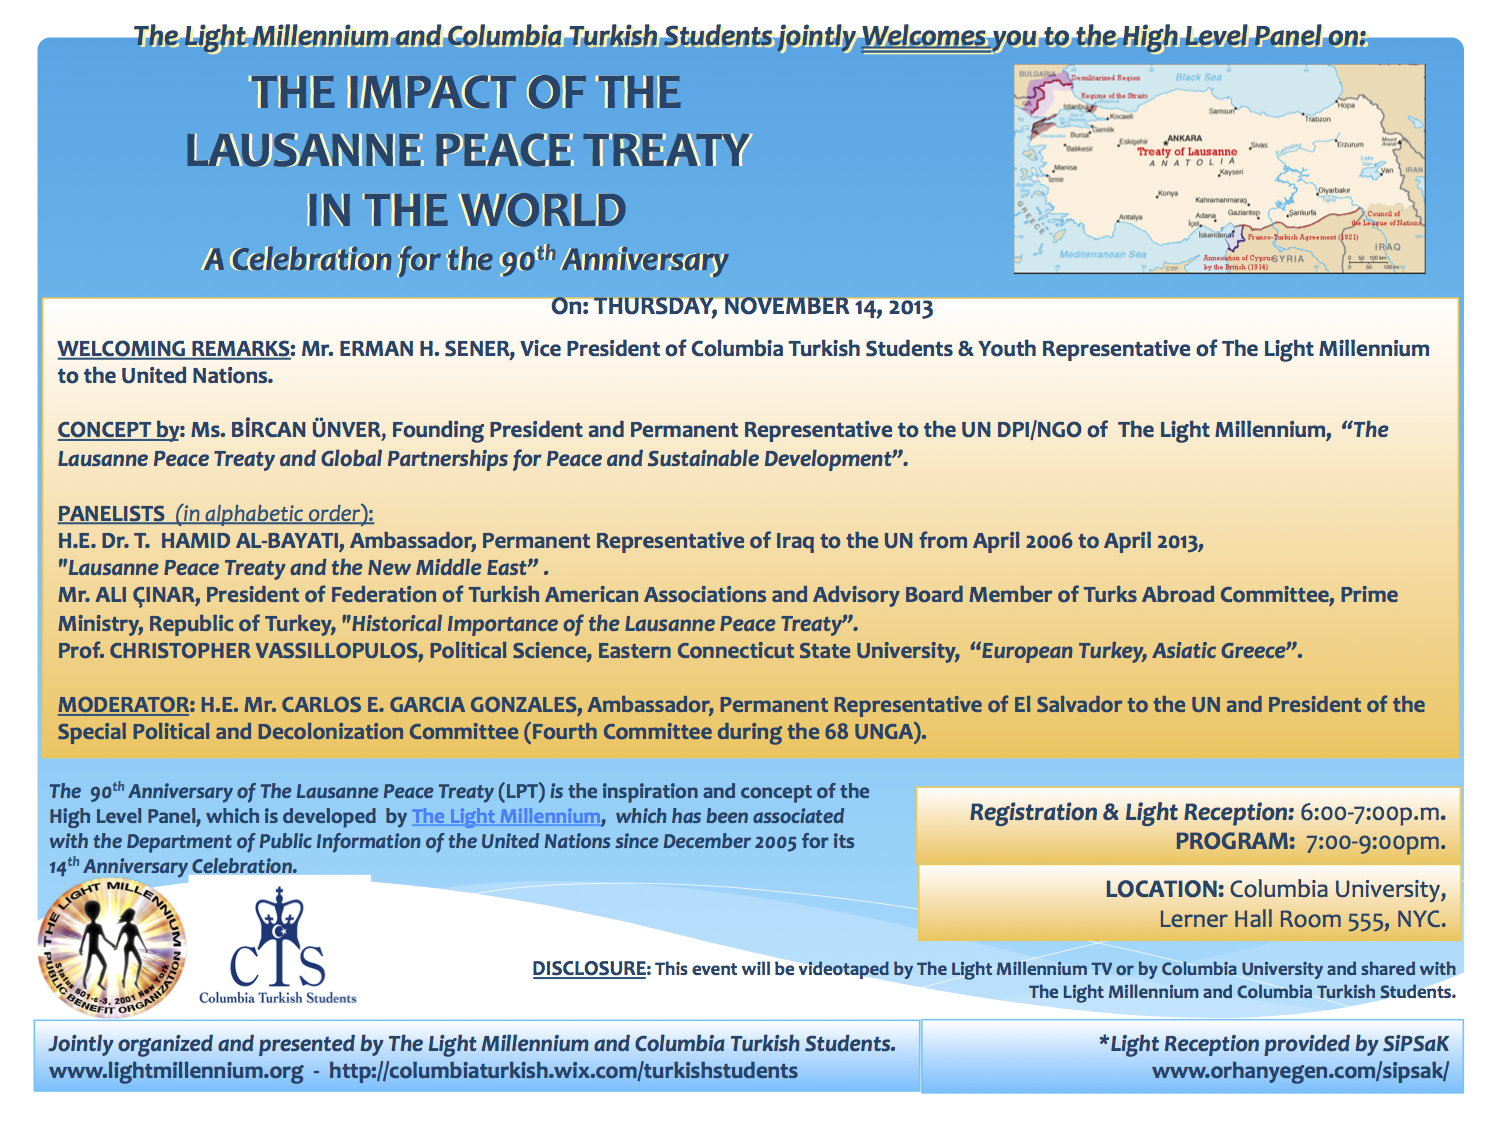 Invite for Nov. 14, 2013 - The Impact of the Lausanne Peace Treaty